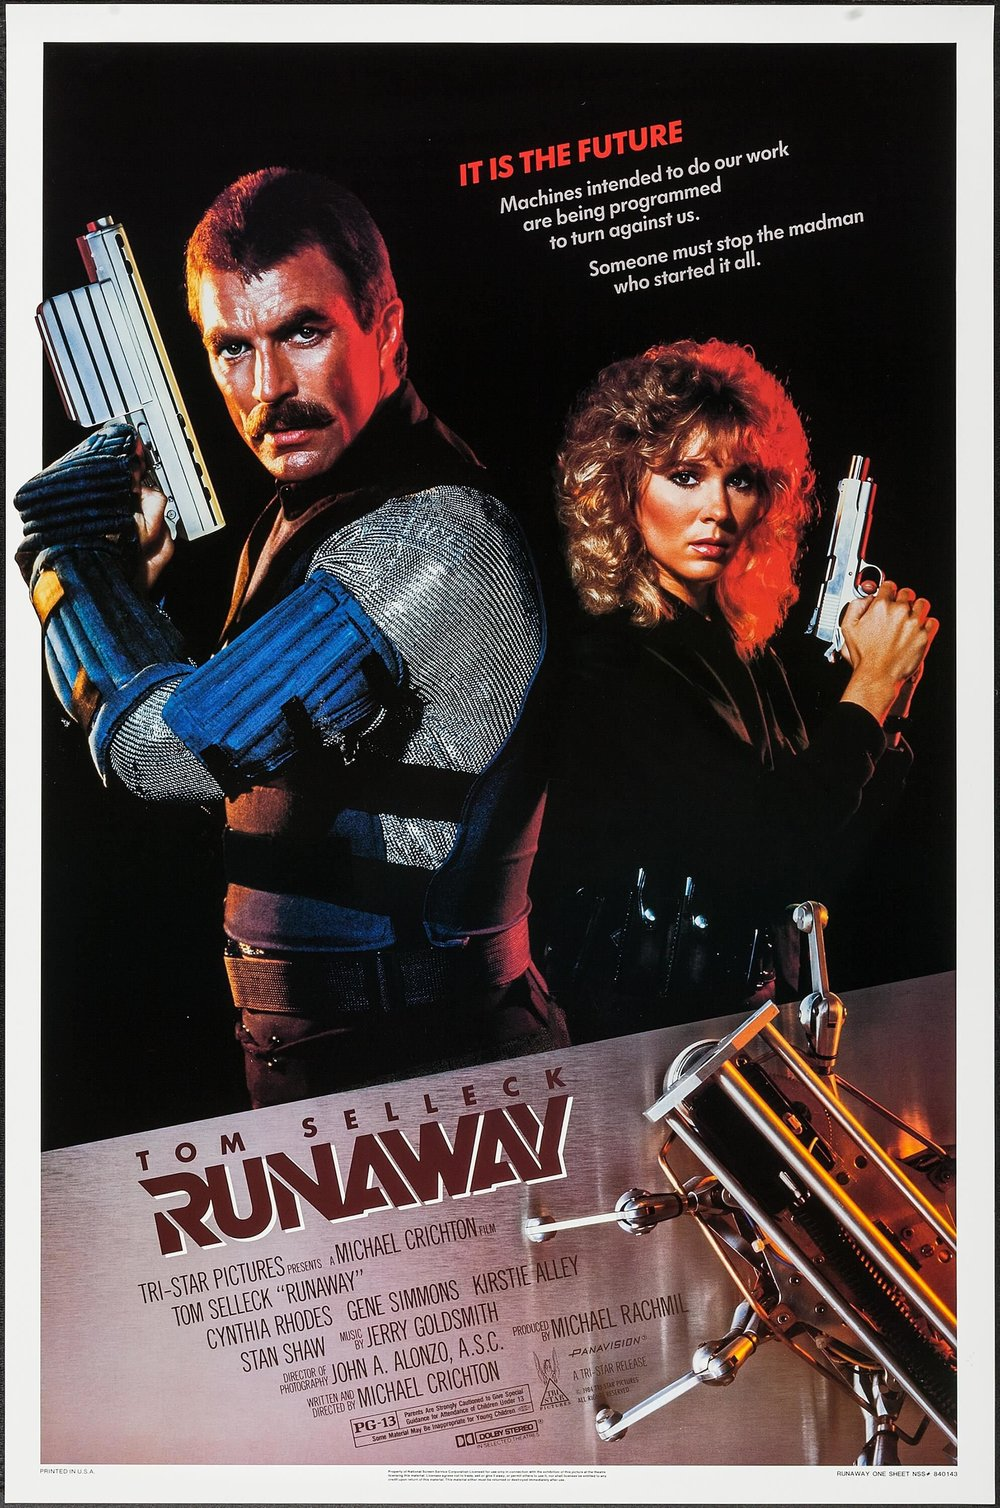 Runaway - By Adam M. Wilcox1984 was a scary time for people. It wasn't because of some Orwellian nightmare, it was future shock. The microchip was the latest and greatest thing in town. Computers were becoming a household reality. Even my Grandpa once showed me a picture of a microchip on the cover of National Geographic, and told me that it was going to change everything. He was right of course.Like any good science fiction, the latest and greatest tech must be presented in its worst form in order to scare us of things that could happen, if not regulated properly by mankind. Written and Directed by Michael Crichton, Runaway tells the story of a not so distant future where robots are a part of everyday life through the eyes of Jack Ramsey (Tom Sellek), a police sergeant who runs a small police unit that specializes in robots that malfunction. Ramsey has a job that nobody wants, but Ramsey pursued this career path, as a means to avoid his overwhelming fear of heights. To put it simple, he is the local expert, because he happens to know more about the field than anyone in the department. His chief thinks he's an asshole, his chief is an asshole, and Ramsey is basically surrounded by assholes most of his day, so robots are a means to and end.Most of the days, Ramsey is called upon to do meaningless tasks like chase farm robots, and gets scolded and scoffed at by anyone he comes in contact with. He's less of a cop, and more of a high tech exterminator, or dog catcher depending on the situation. Every once in a great while, a robot goes really bad, and deaths are involved. It is during one of these encounters where Ramsey picks up the trail of a freelance high tech genius turned arms dealer named Dr. Charles Luthor played by a scenery chewing Gene Simmons in his cinematic debut. Luthor is trying to track down the templates for making bullets that track its prey using similar technology as a heat seeking missile. Luthor is also a futuristic James Bond type villain who also has deadly microchips that turn normal robots into lethal killers, and dispenses a small army of robotic spiders that inject people with acid, and explode upon completion.The plot of this movie sounds pretty basic because it is. The acting in this movie is pretty stiff, and I am not sure if that is intentional, but it doesn't bother me, in fact it kind of makes this movie work. The true star of this movie is the special affects and the technology in this movie that will blow your mind. Keep in mind this movie was made in 1984 yet police officers communicate with Blu-tooth headsets, use tablets with facial recognition software, use surveillance drones, remember drones in the early 1980s? They didn't exist! It's creepy and awesome. If somebody told me Michael Crichton went to the future, or had some friend working on next level technology I would buy it. In fact most of the technology in this movie actually looks quite believable. Of course there are some scenes that involve maybe a laser or two, but most of it is pretty practical stuff. Even the heat seeking bullet is in development. The steady cam view from the bullet itself as it tracks its prey around corners, circles back, and flies back towards its victim is some really fun stuff. The plot may be disposable, but the day to day life of a cop who handles malfunctioning robots could be a fantastic television series, if done properly. Does this maybe sound like I, Robot to you? This is in some ways a better movie. Oh, and of course that fear of heights thing, will play back into the plot again at some point, don't worry.I remember seeing Runaway as a kid on cable TV back in the 80's. This film was abandoned in time, and forgot about, and since this movie came out the same year as The Terminator, it is not hard to understand why, but I think this movie does hold up well on its own. This is perhaps one of many lost flicks that may be finding its audience now. It might not have a lot going for it from the acting, but the special effects and world building technology are more than enough to carry it over the finish line. I give this one a 3 out of 5 cheese curds, its fun and worth a look. Runaway is currently available on Amazon Prime in wide screen HDX.